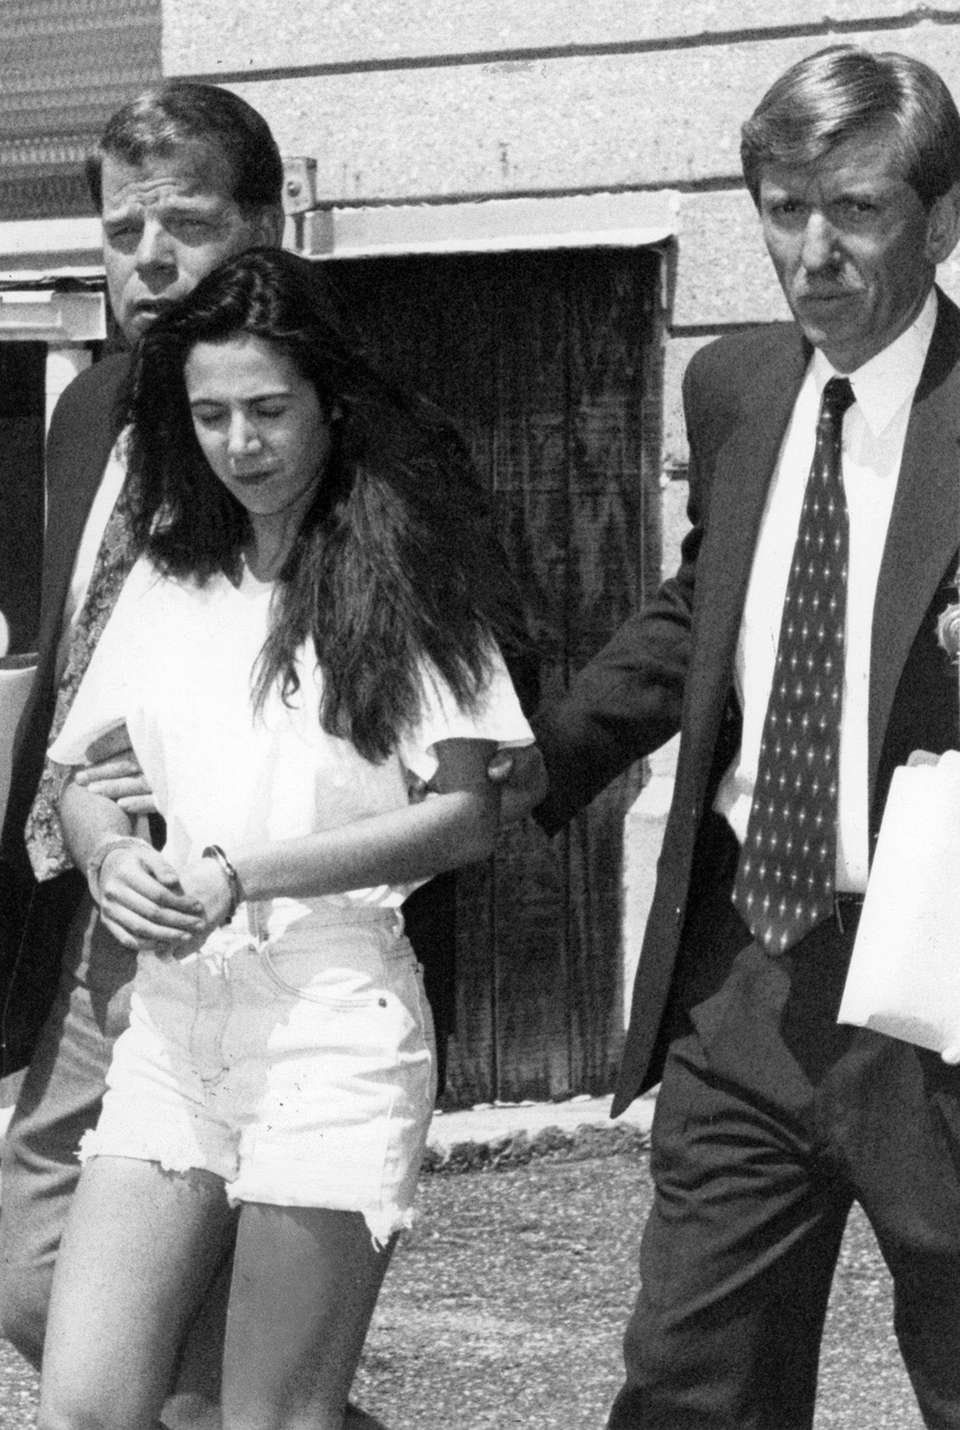 Amy Fisher, 17, is led away in handcuffs